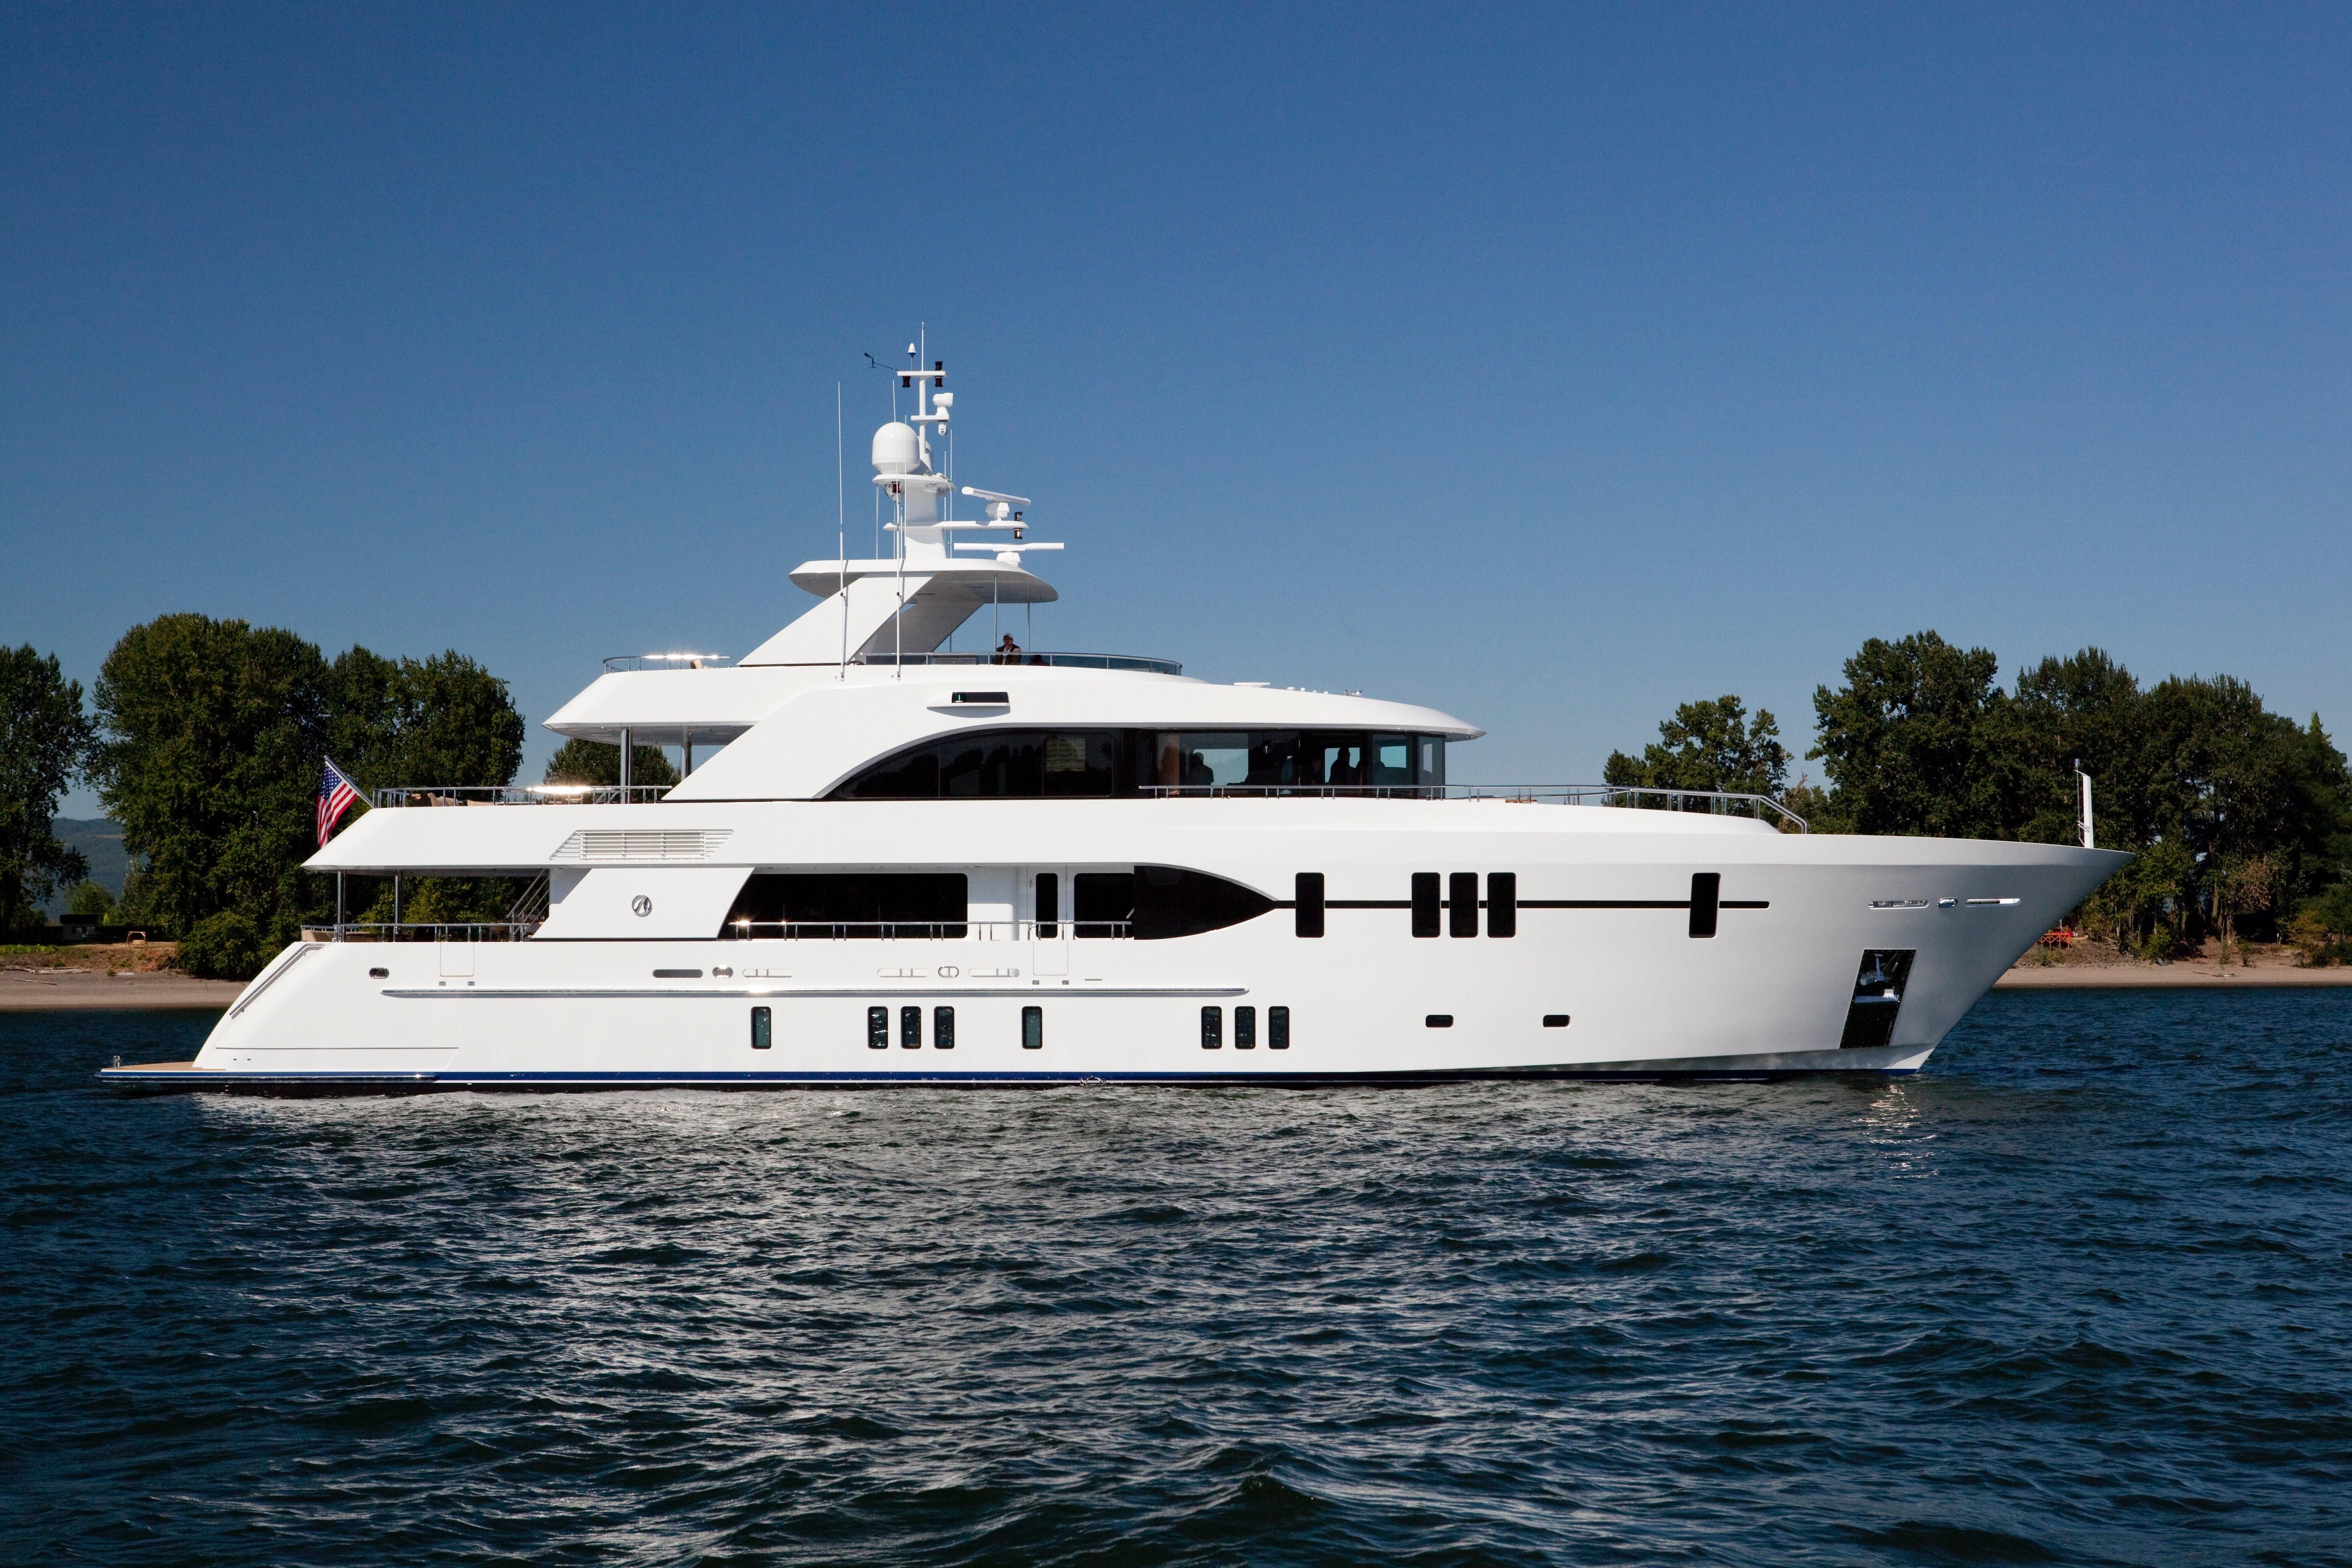 mega luxury yachts sale with United States on Superyacht Amore Mio besides United States in addition Sinot Nature Yacht Monaco 09 23 2017 likewise Render E as well Mega Yacht Concept Design 105m 4 respond.